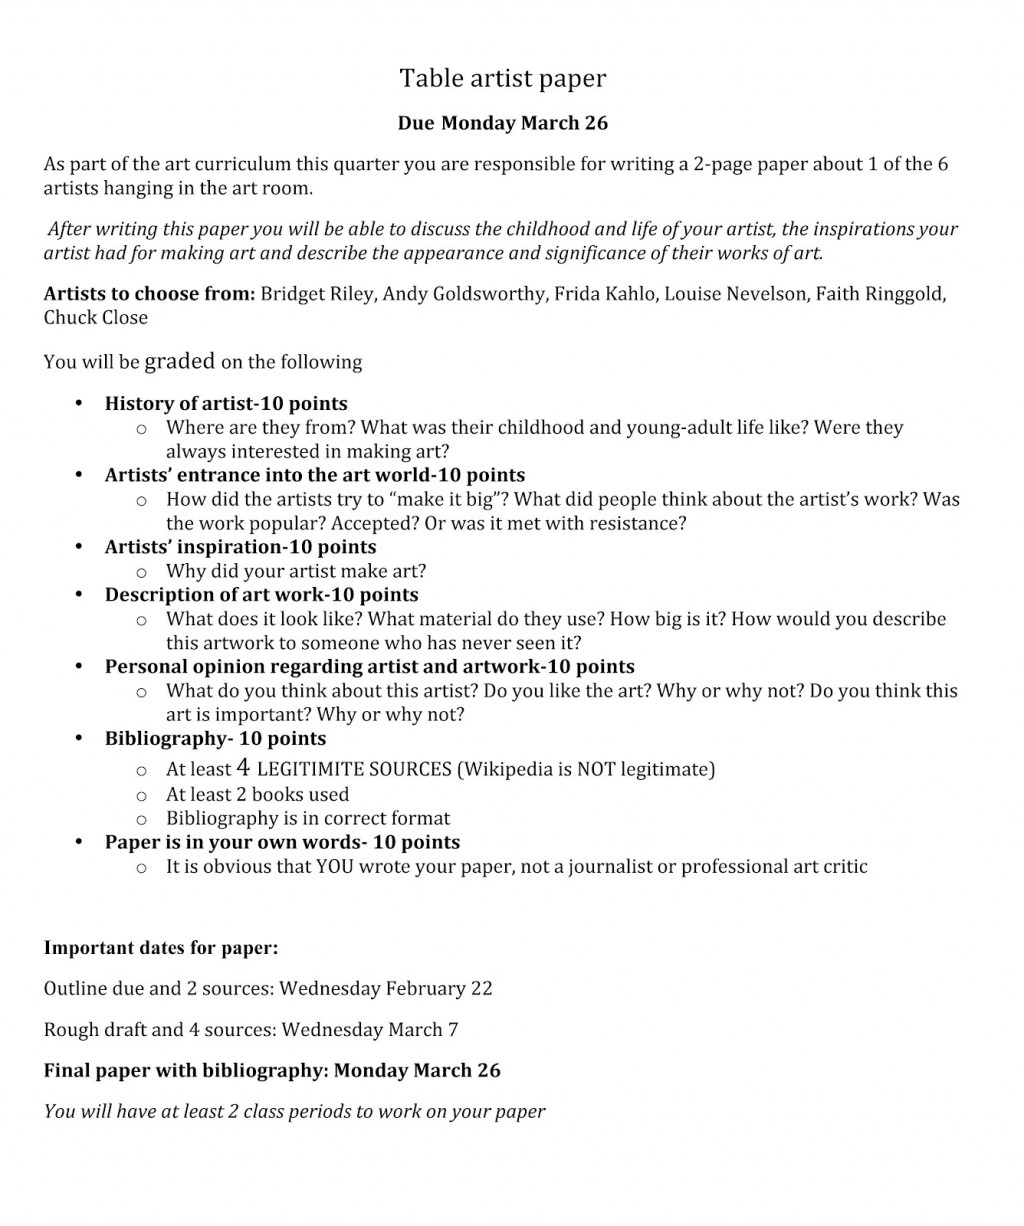 008 How To Make An Outline For History Research Paper Beautiful A Large